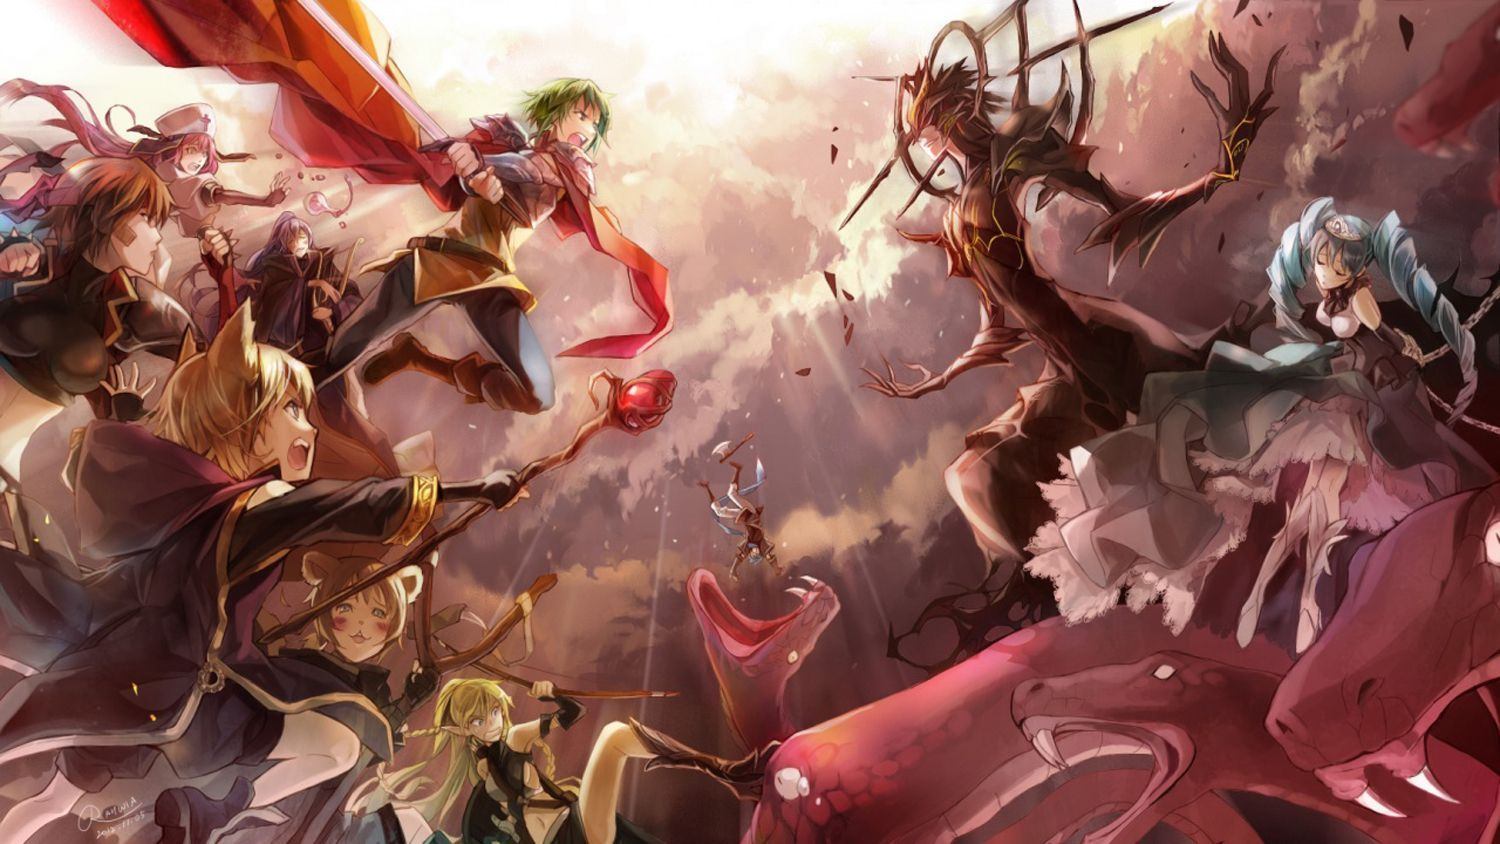 Anime Battle Wallpapers   Top Anime Battle Backgrounds 1500x844